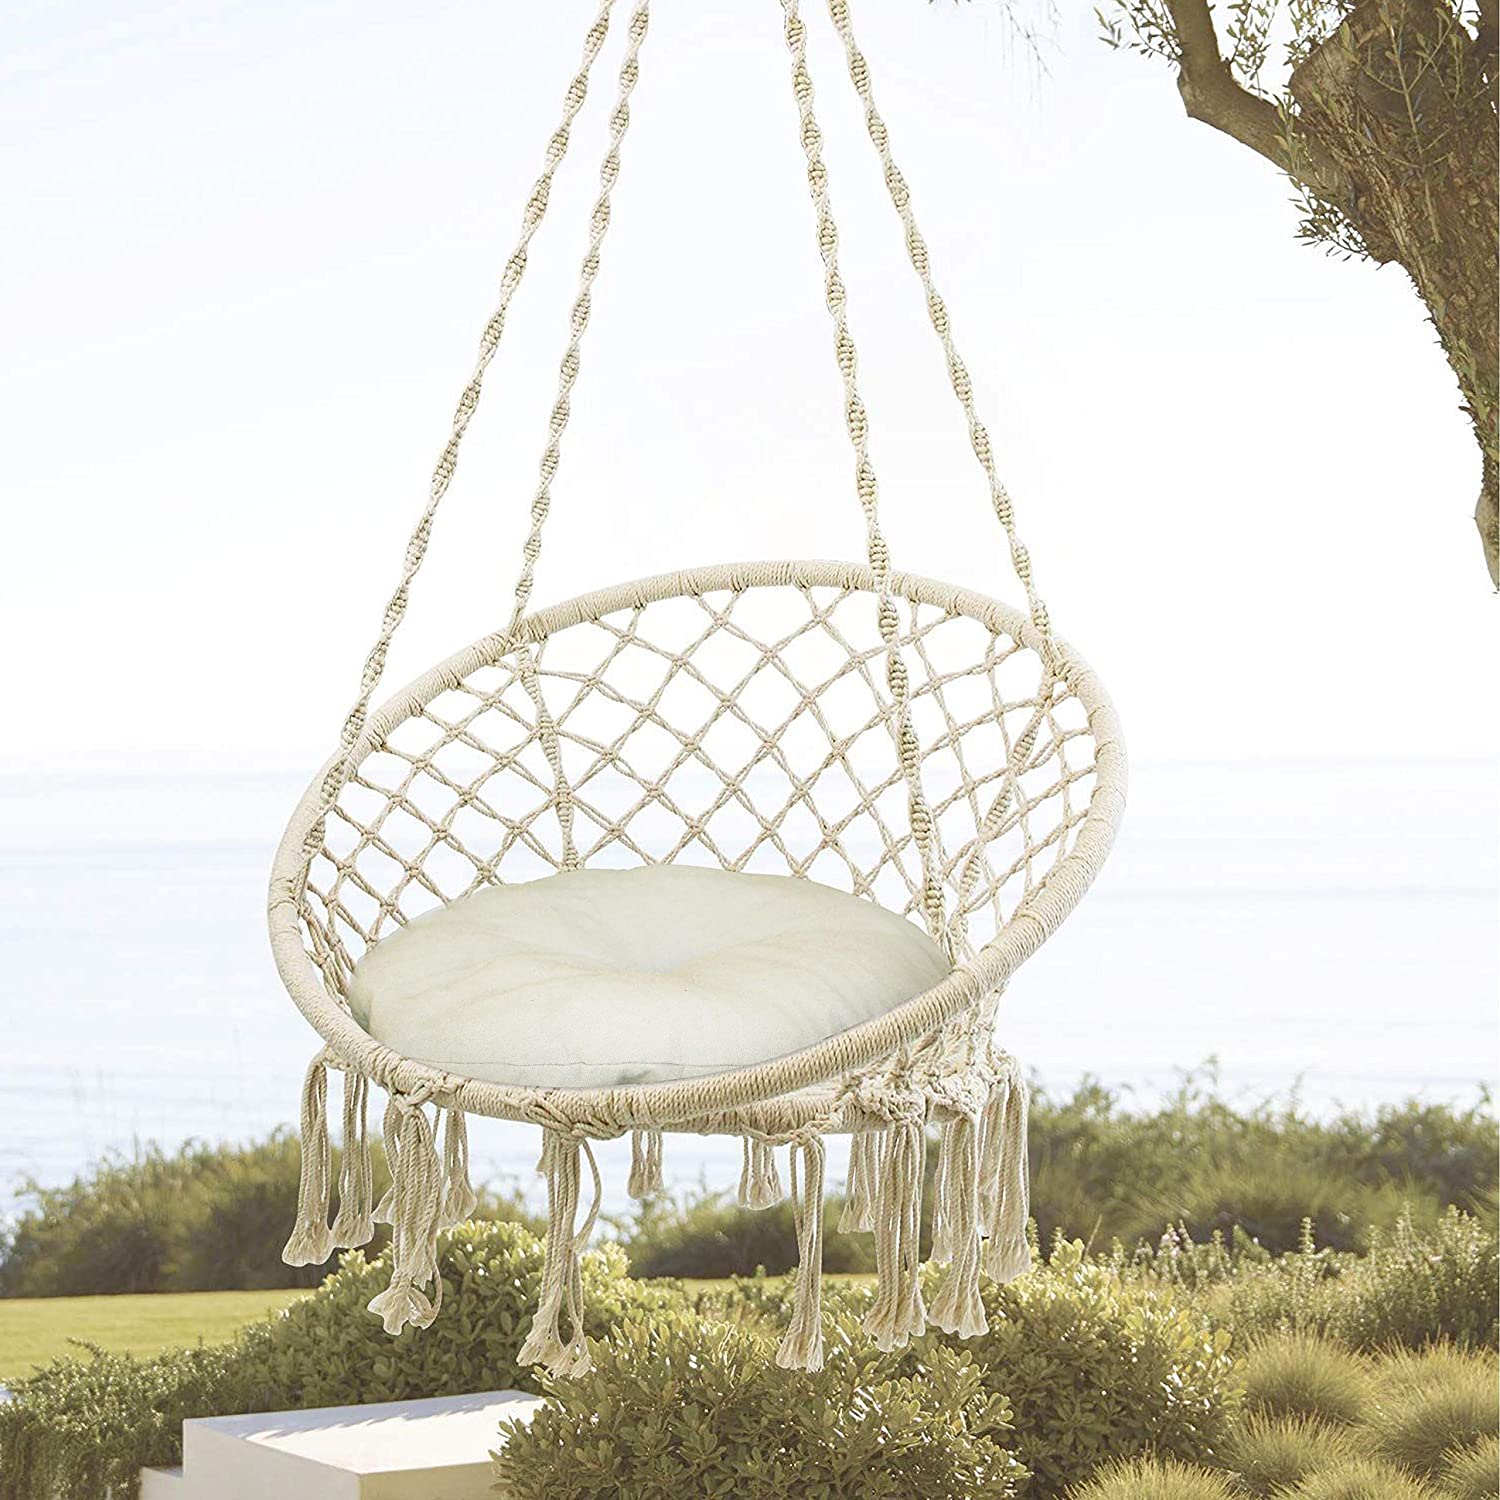 Decorman Hammock Chair Limited time Max 77% OFF cheap sale Macrame Swing with Lbs Cushion Max Ca 330